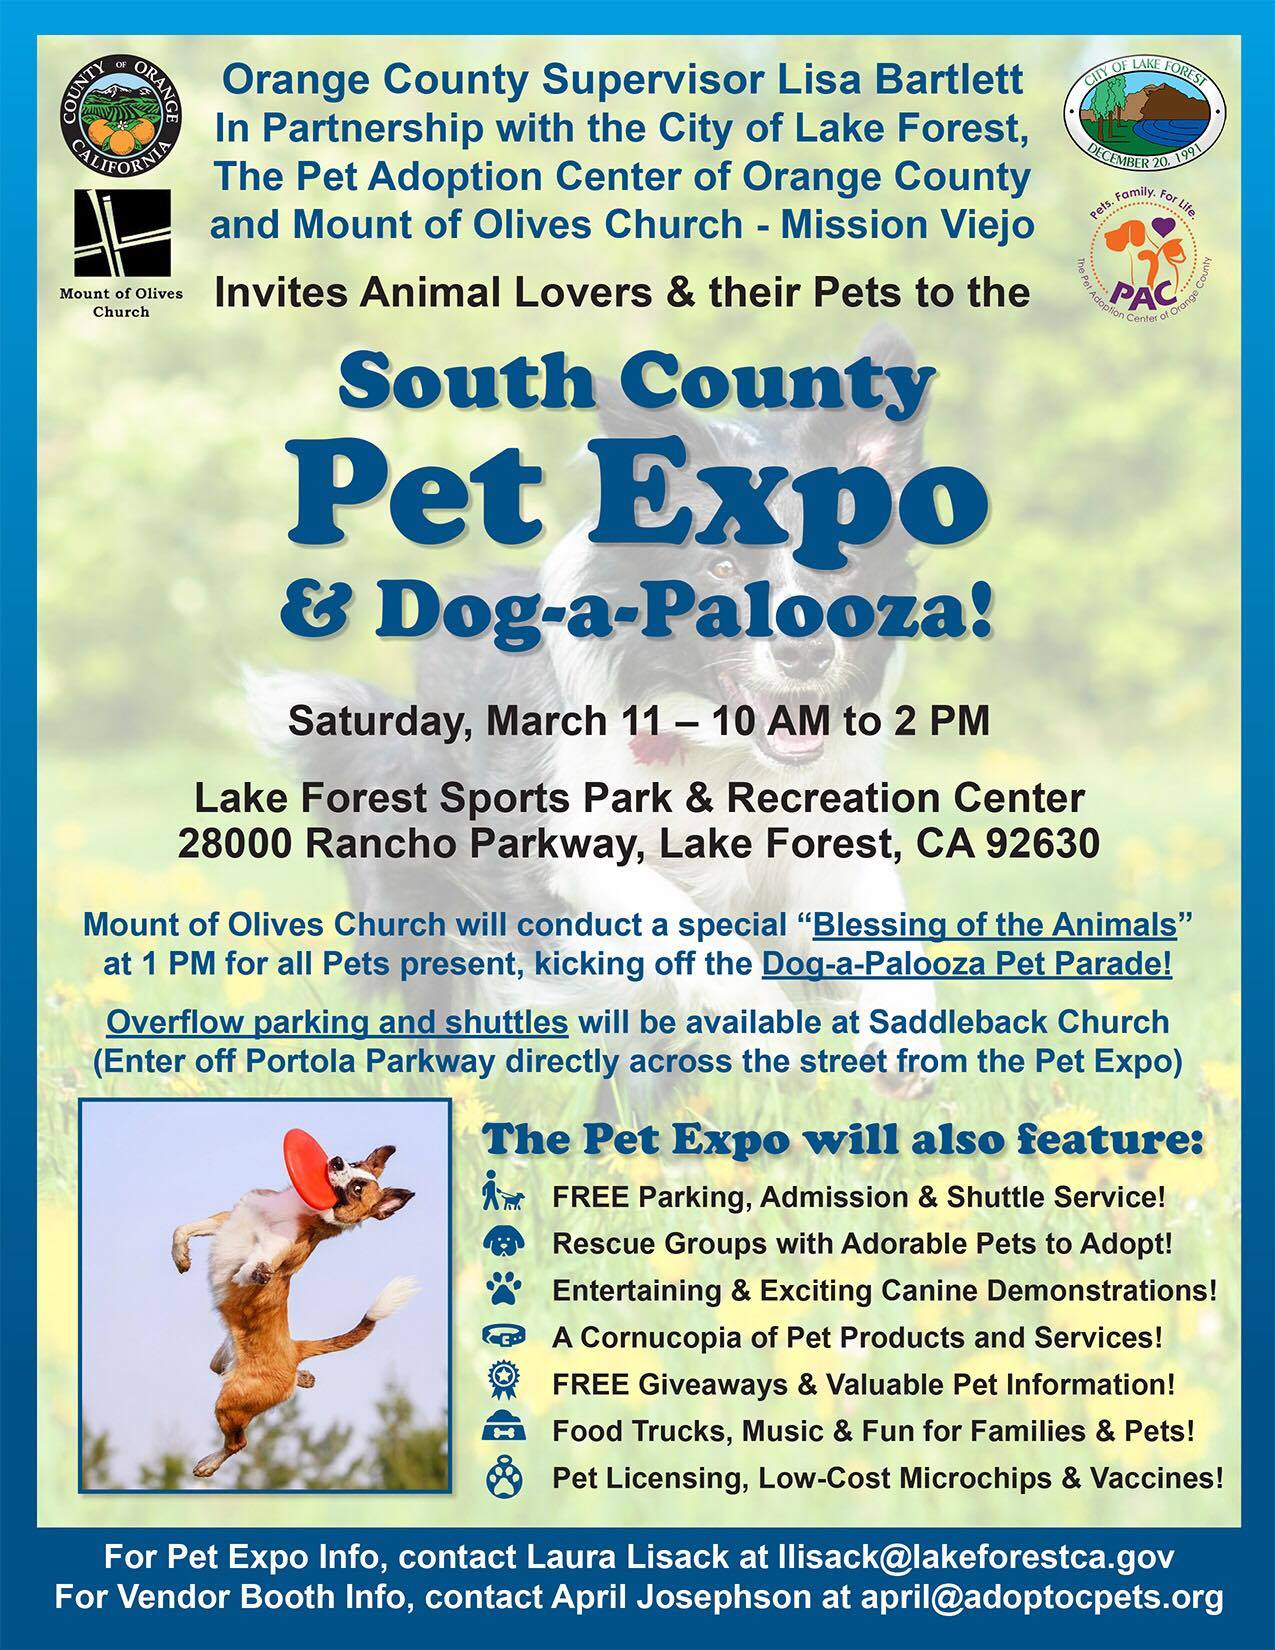 South County Pet Expo – Saturday March 11 – The Pet Adoption